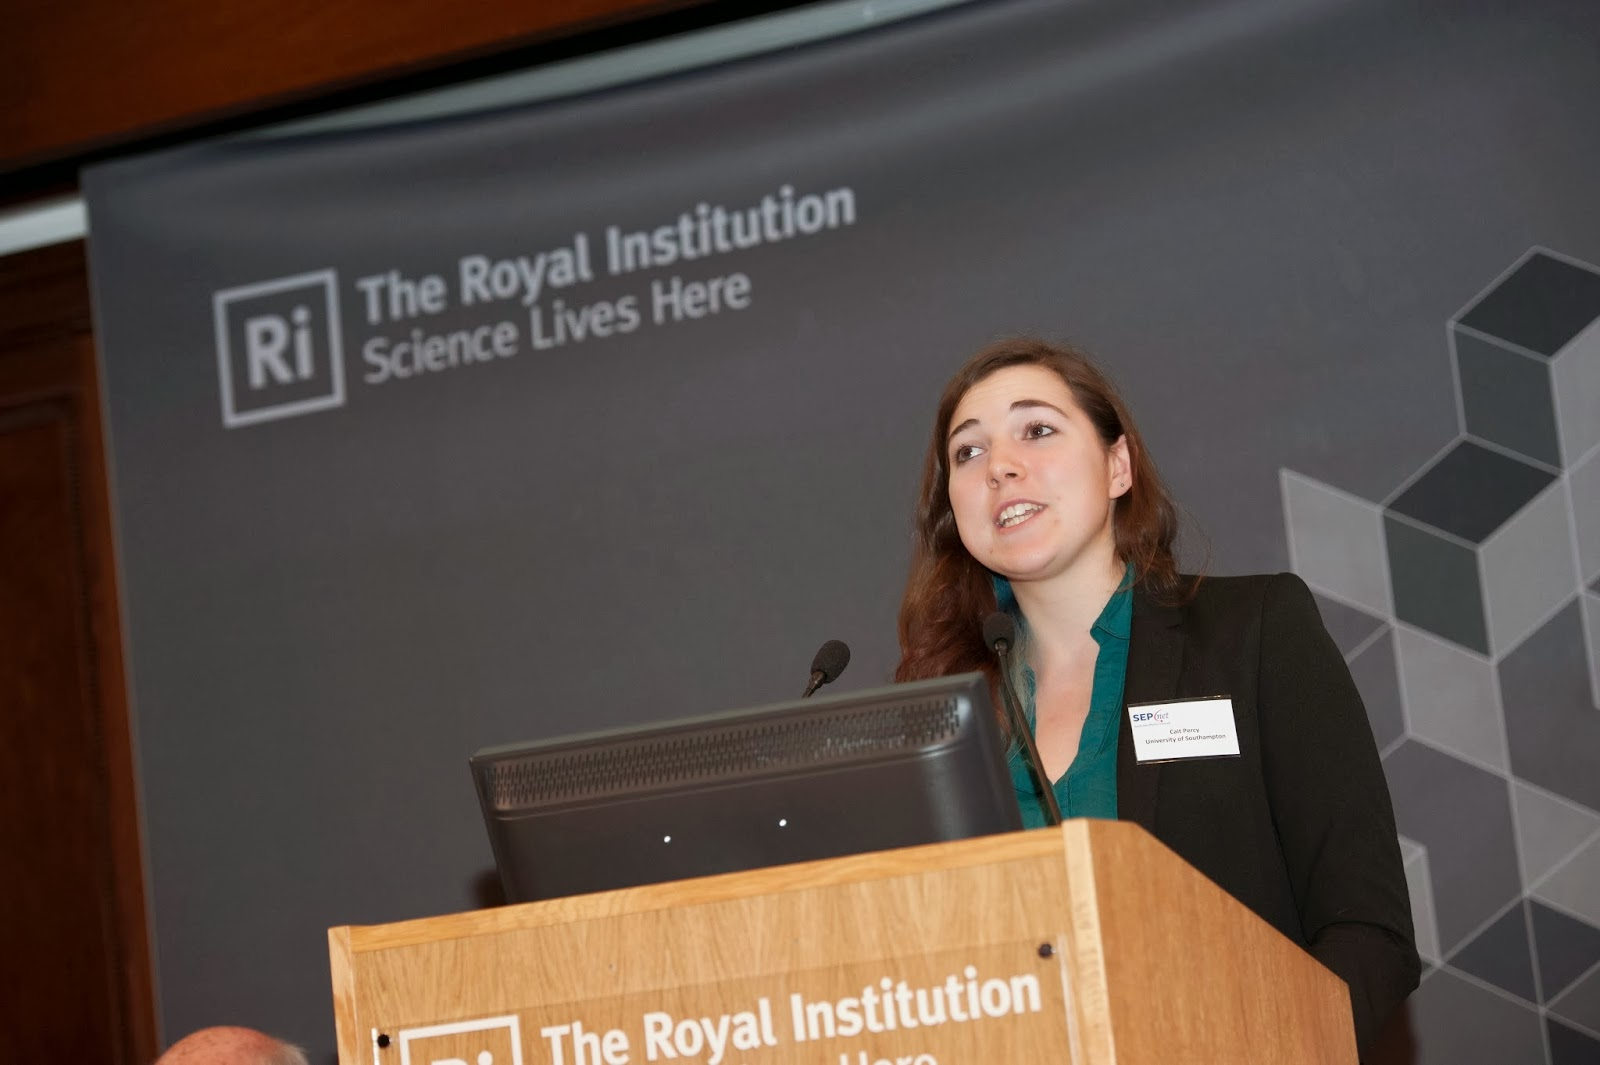 Cait Percy on stage at the Royal Institution. Photograph by Paul Stead Photography.